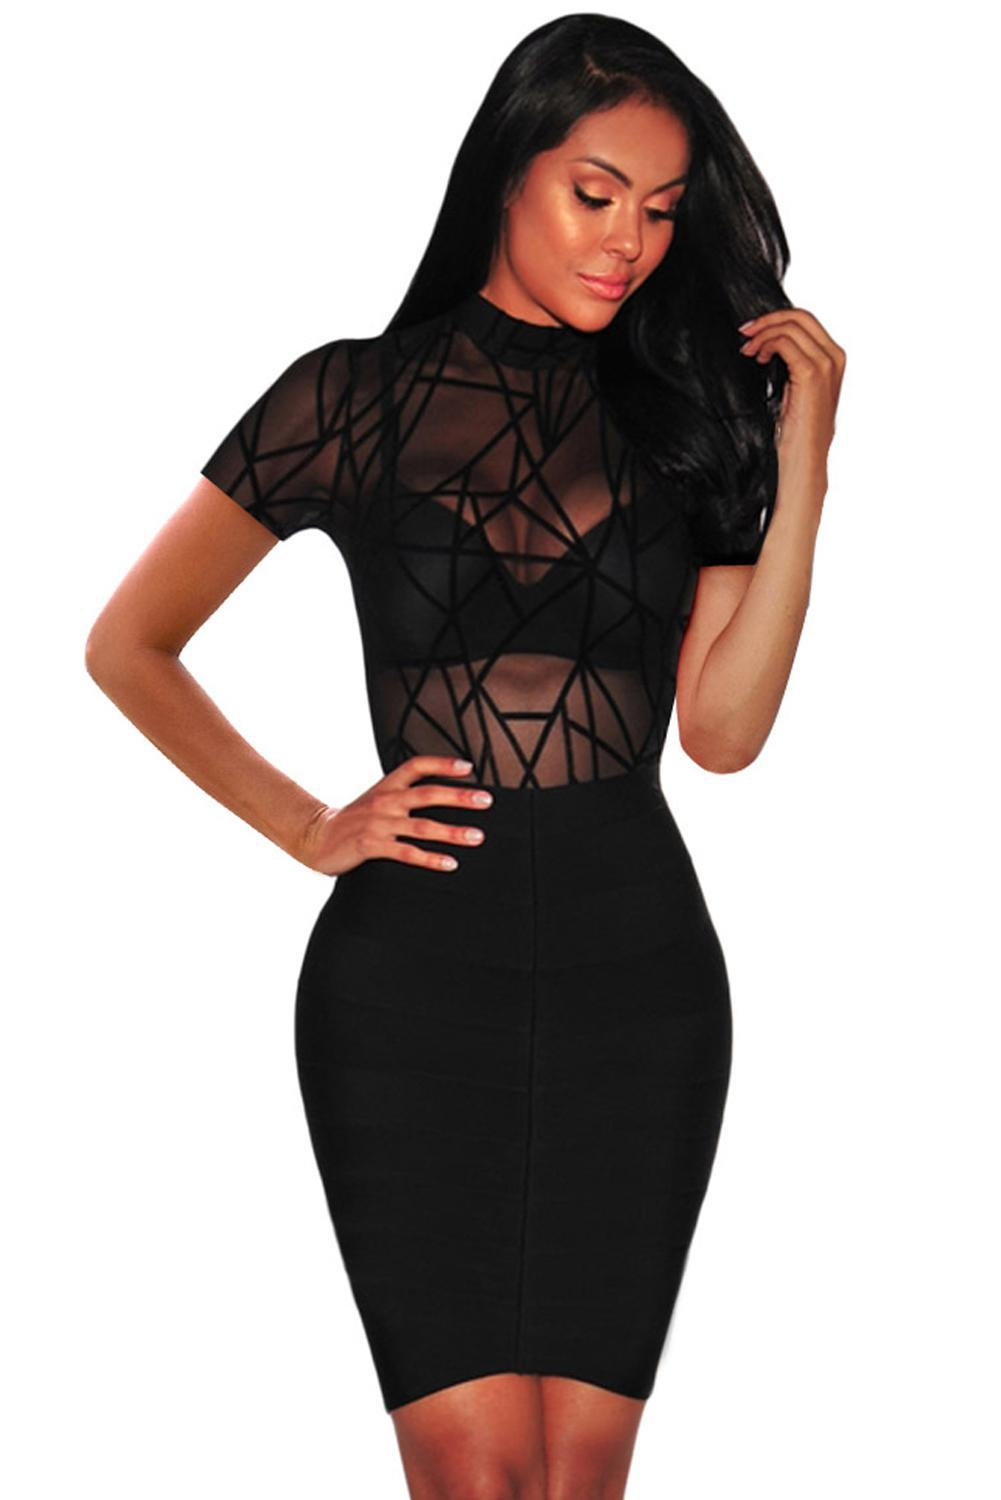 Short Sleeve Mock Neck Sheer Black Mesh Bodysuit